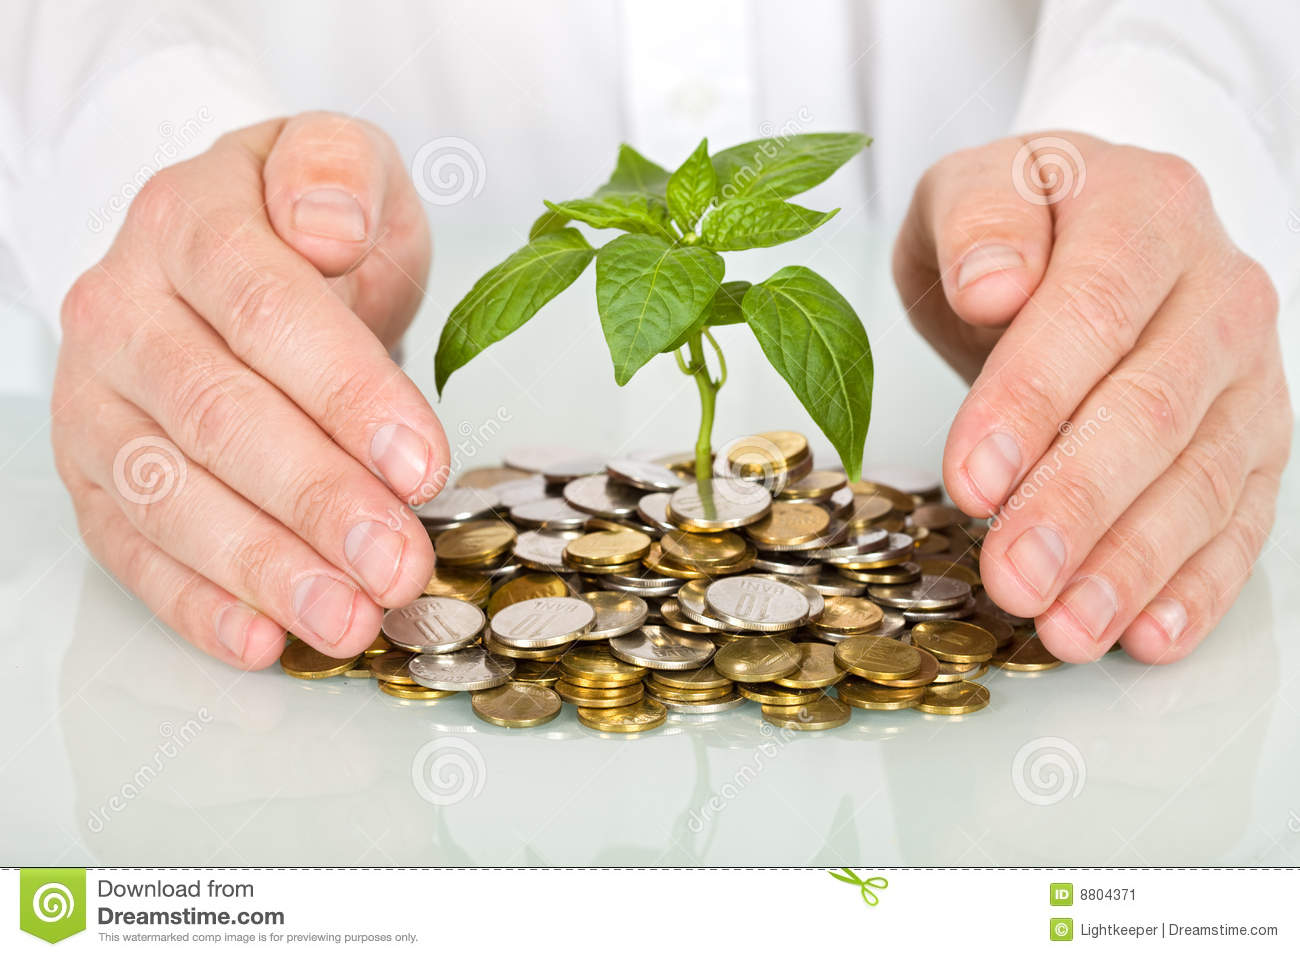 Protecting an investment and money concept